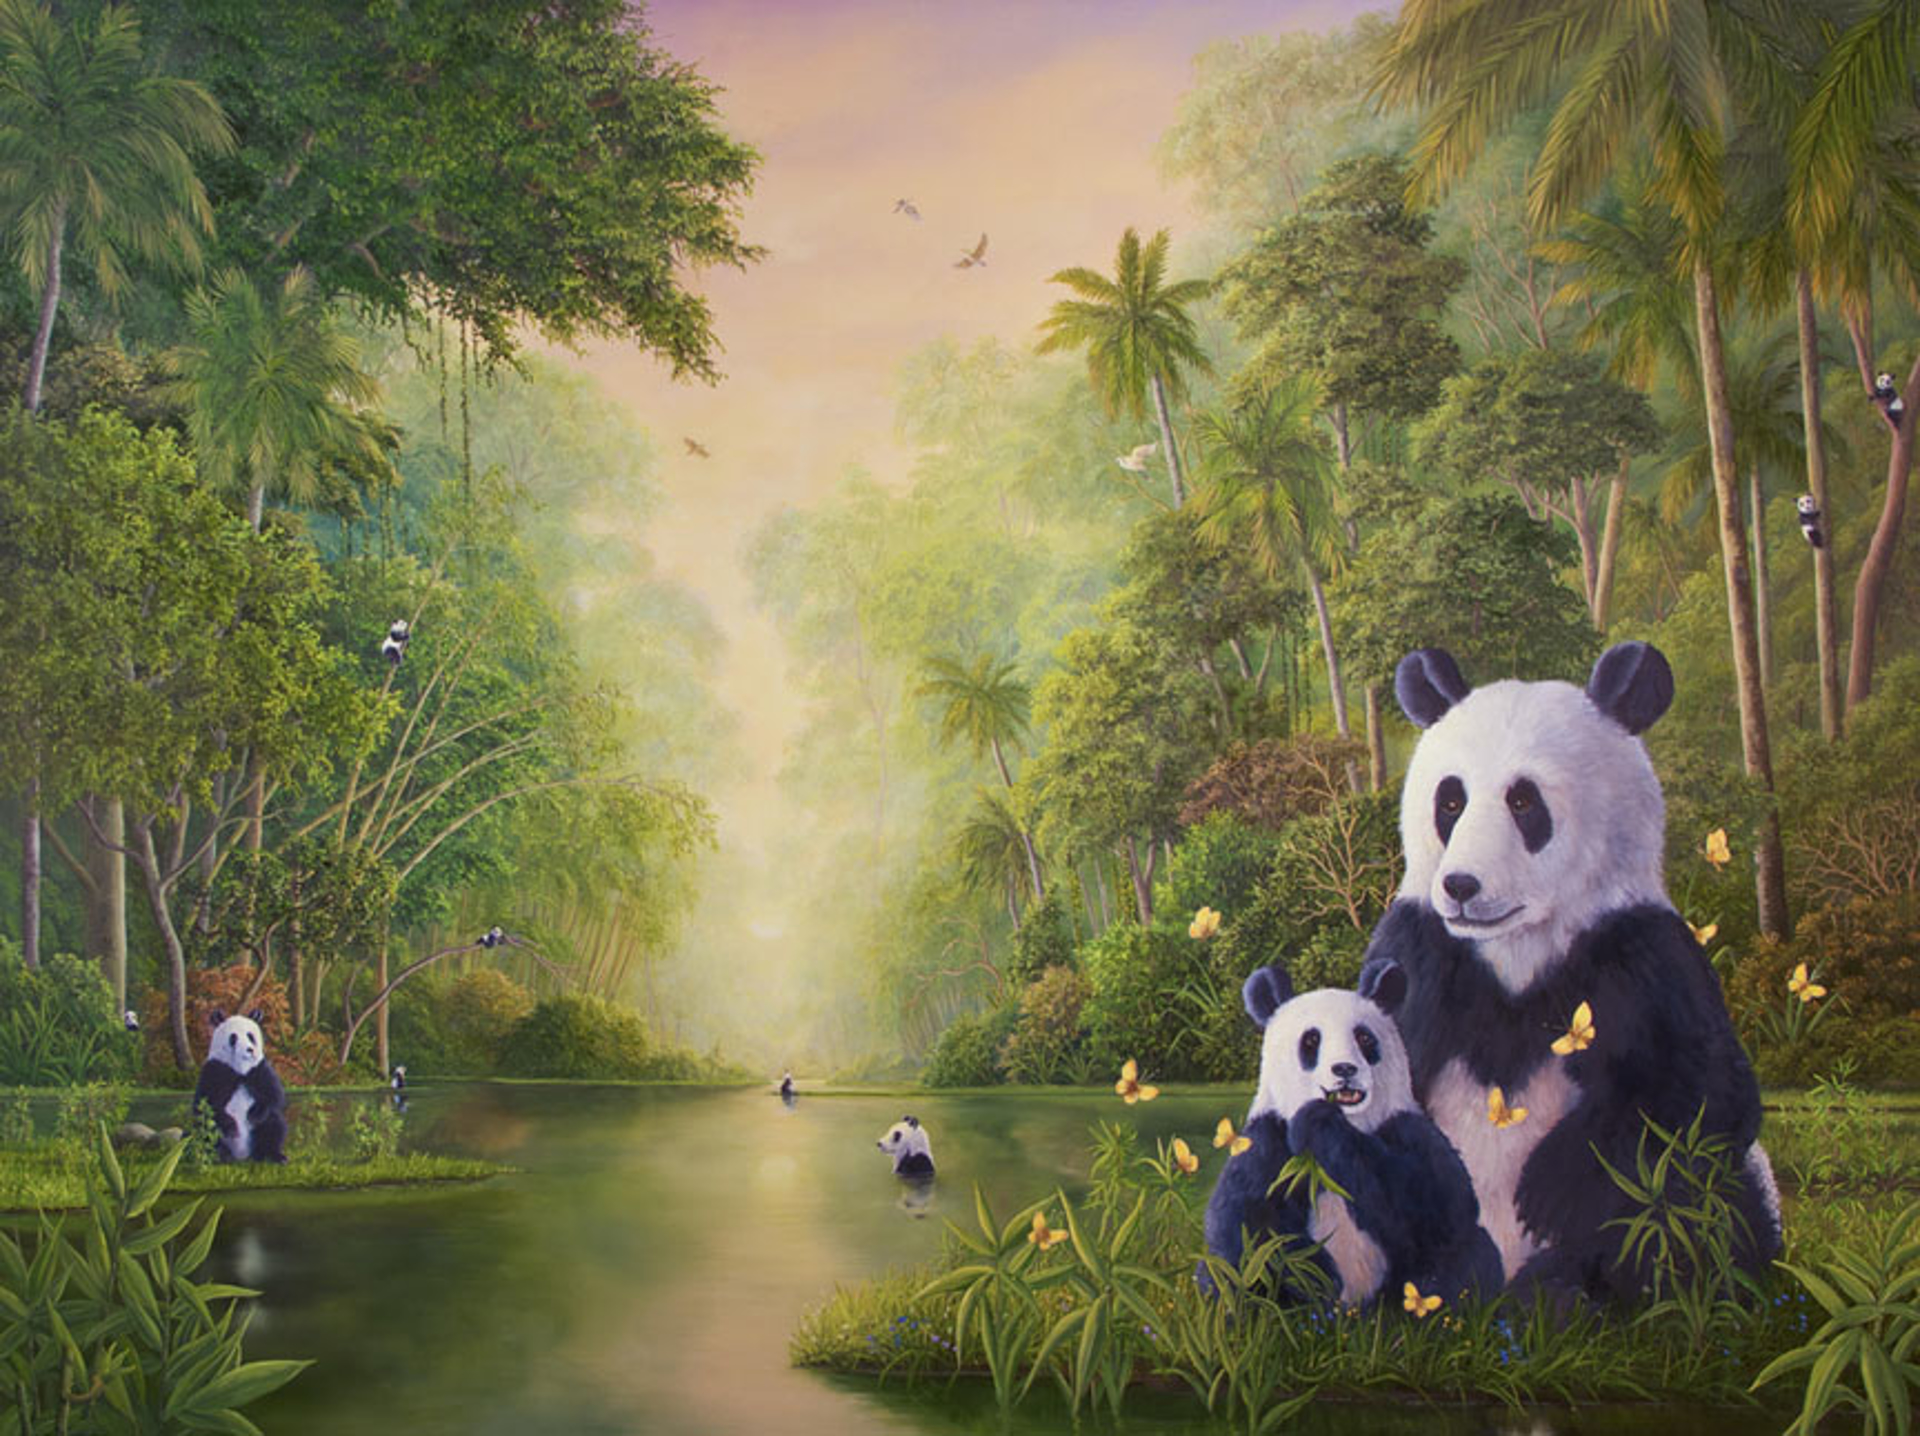 Bamboo River by Robert Bissell